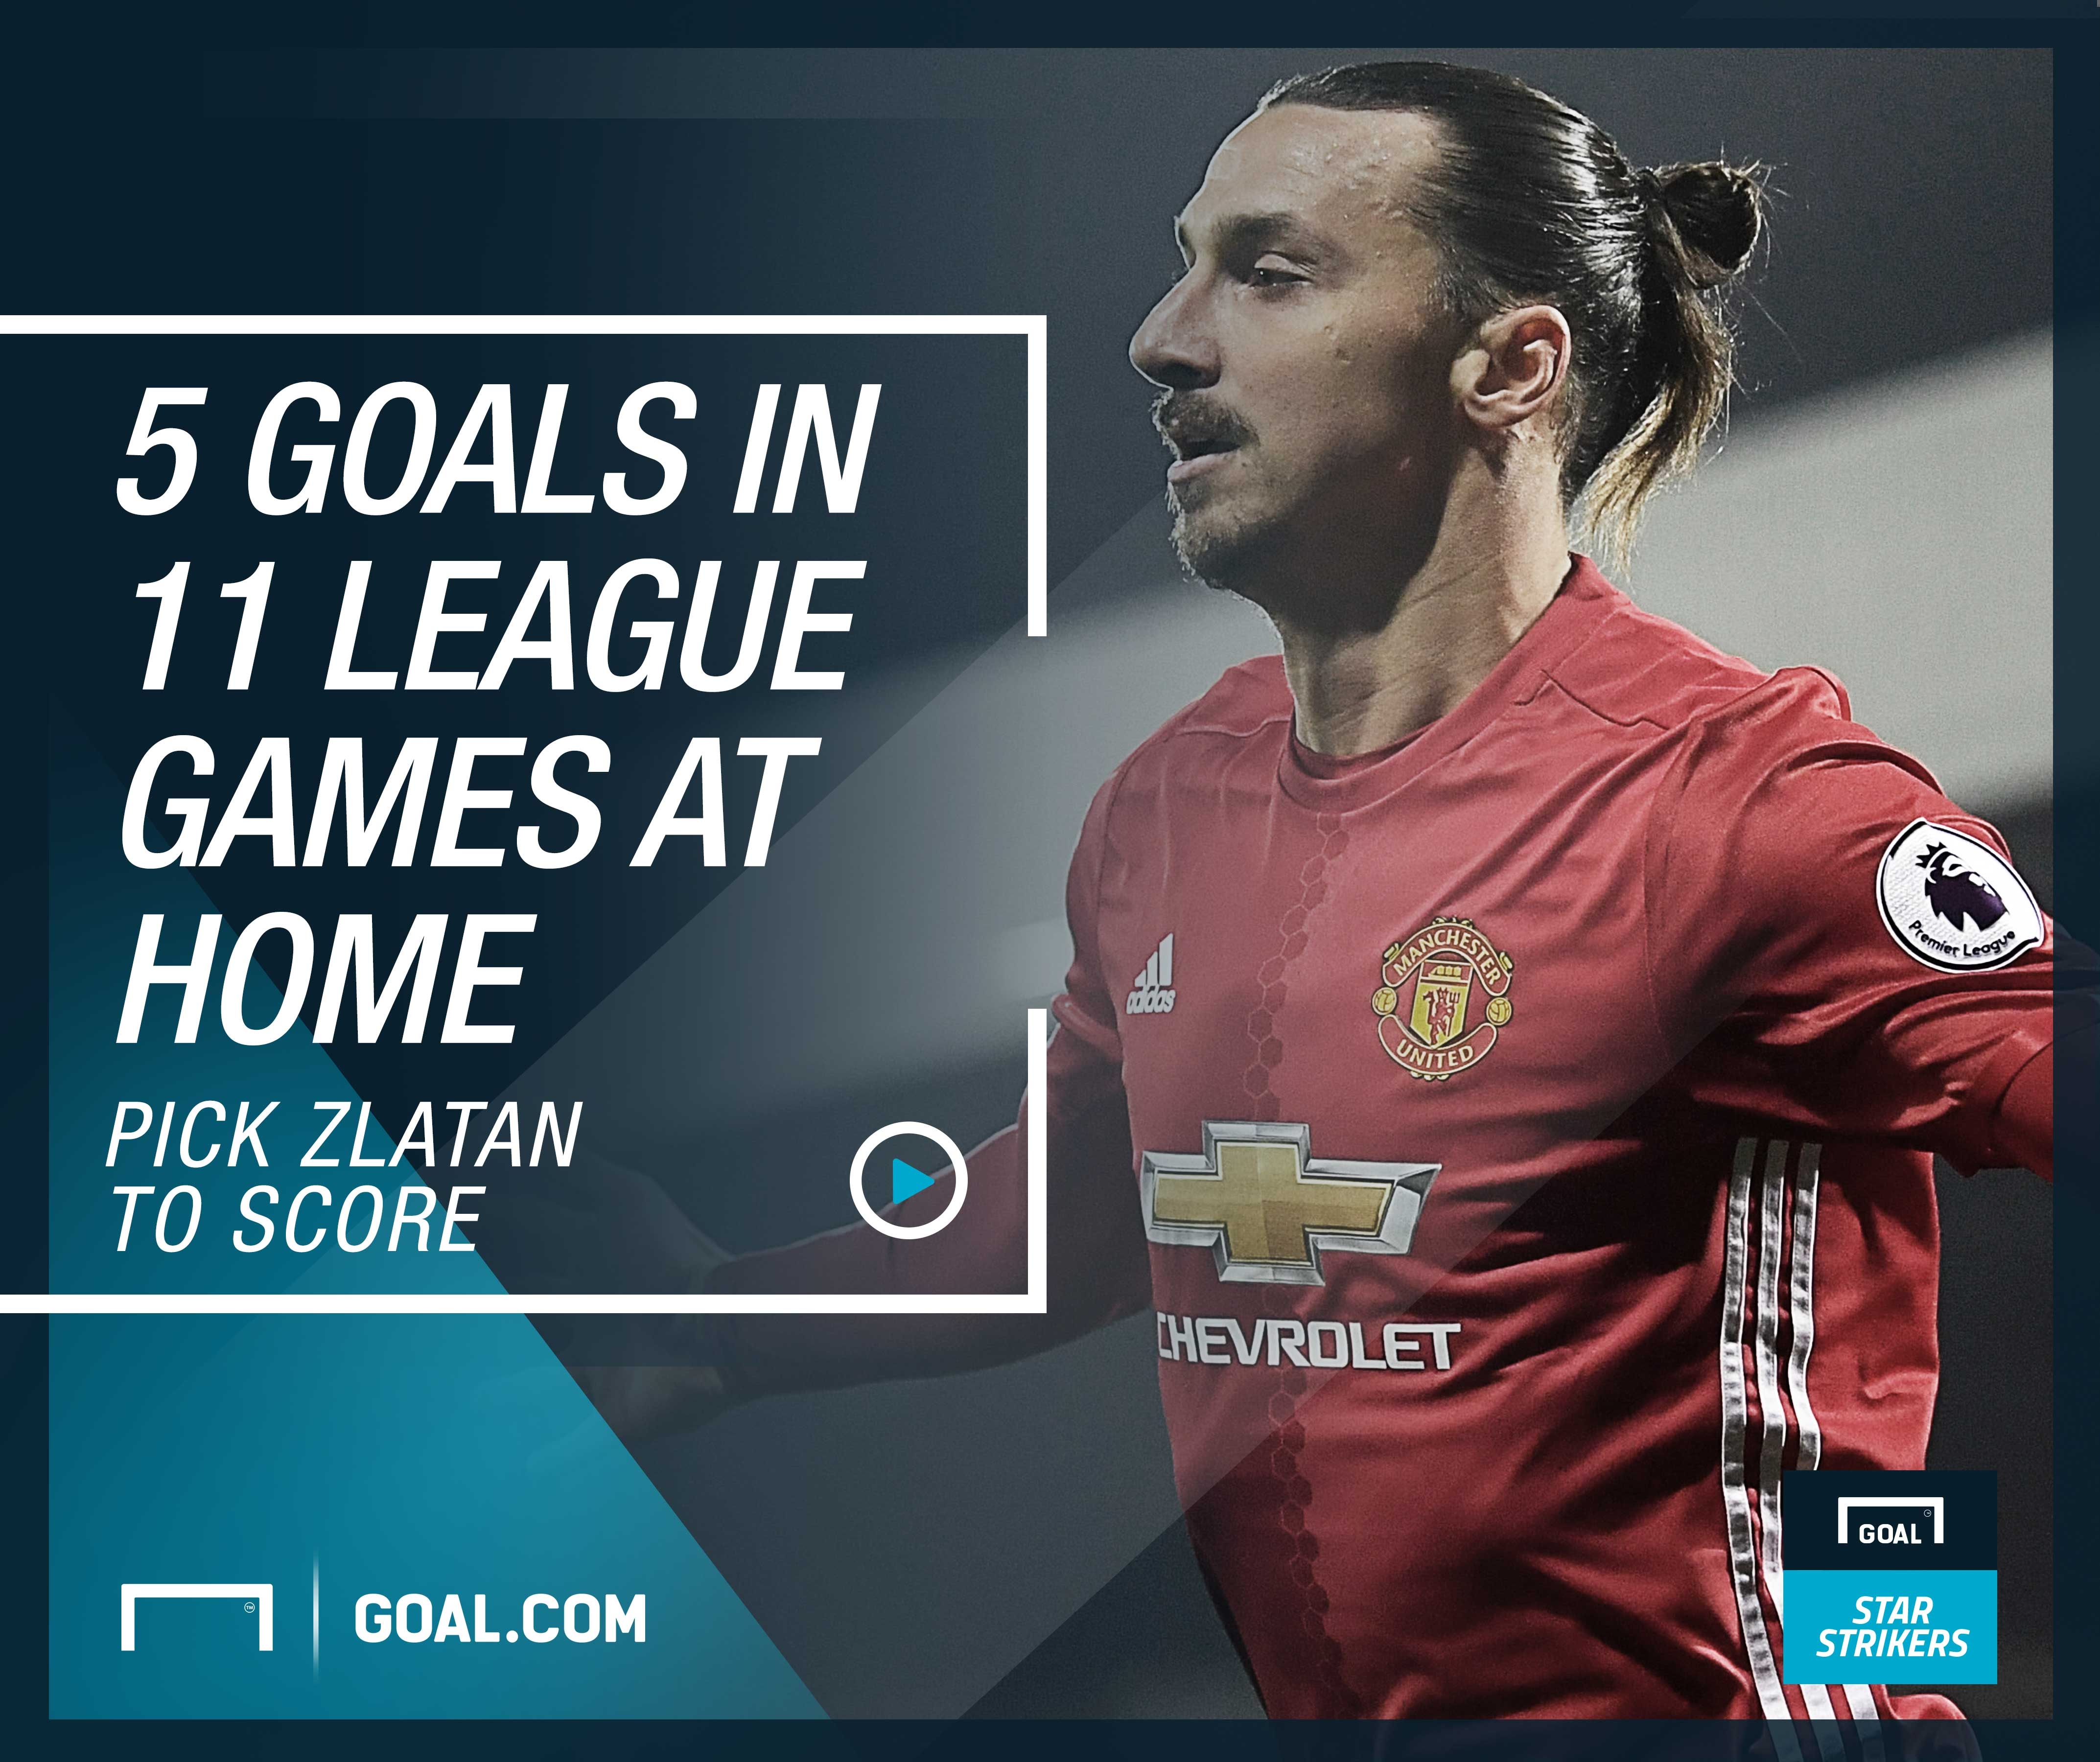 Goal Star Strikers - Zlatan